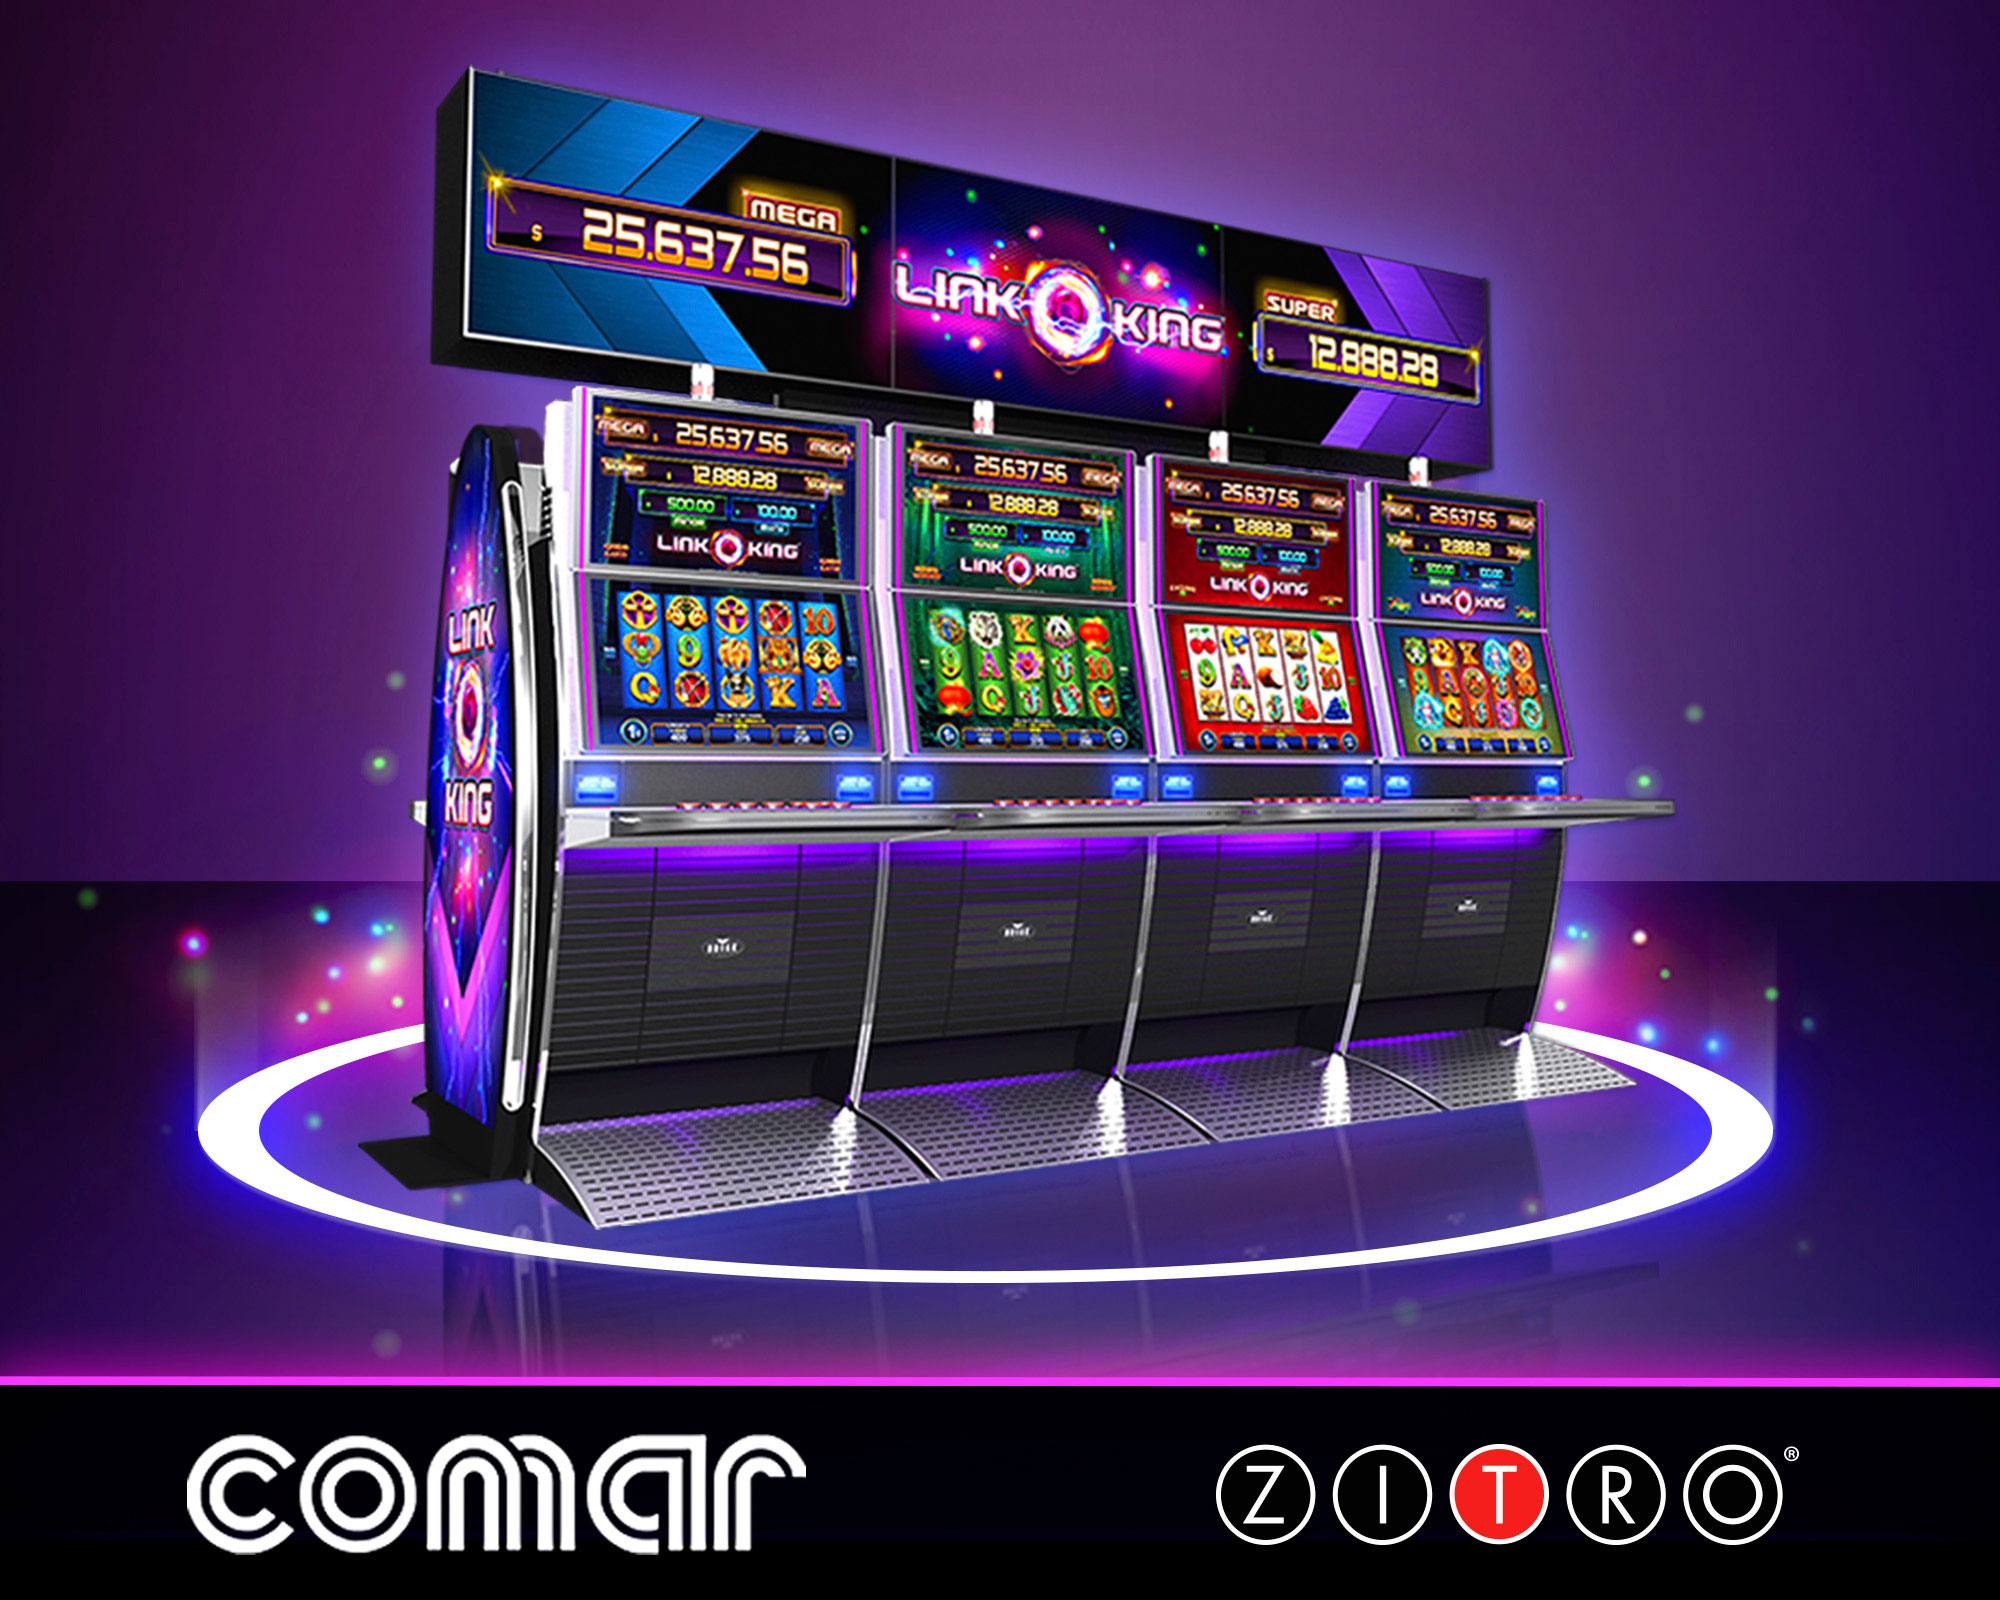 Zitro arrives to the casinos of COMAR group in the Dominican Republic